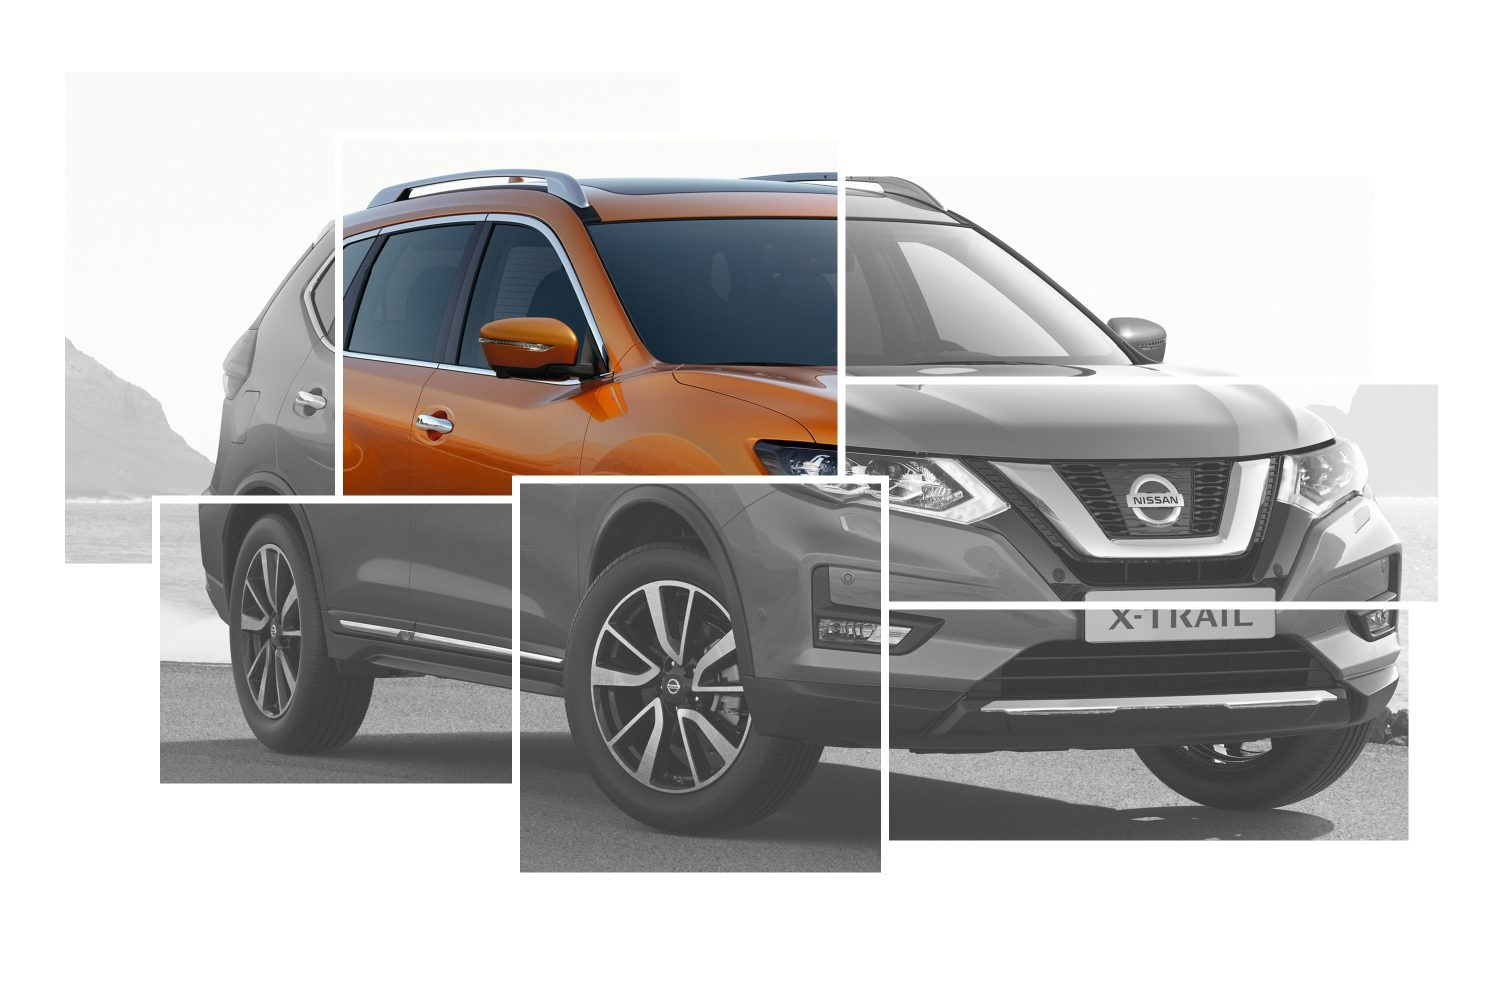 design nissan x trail 4x4 crossover voiture 7 places nissan. Black Bedroom Furniture Sets. Home Design Ideas